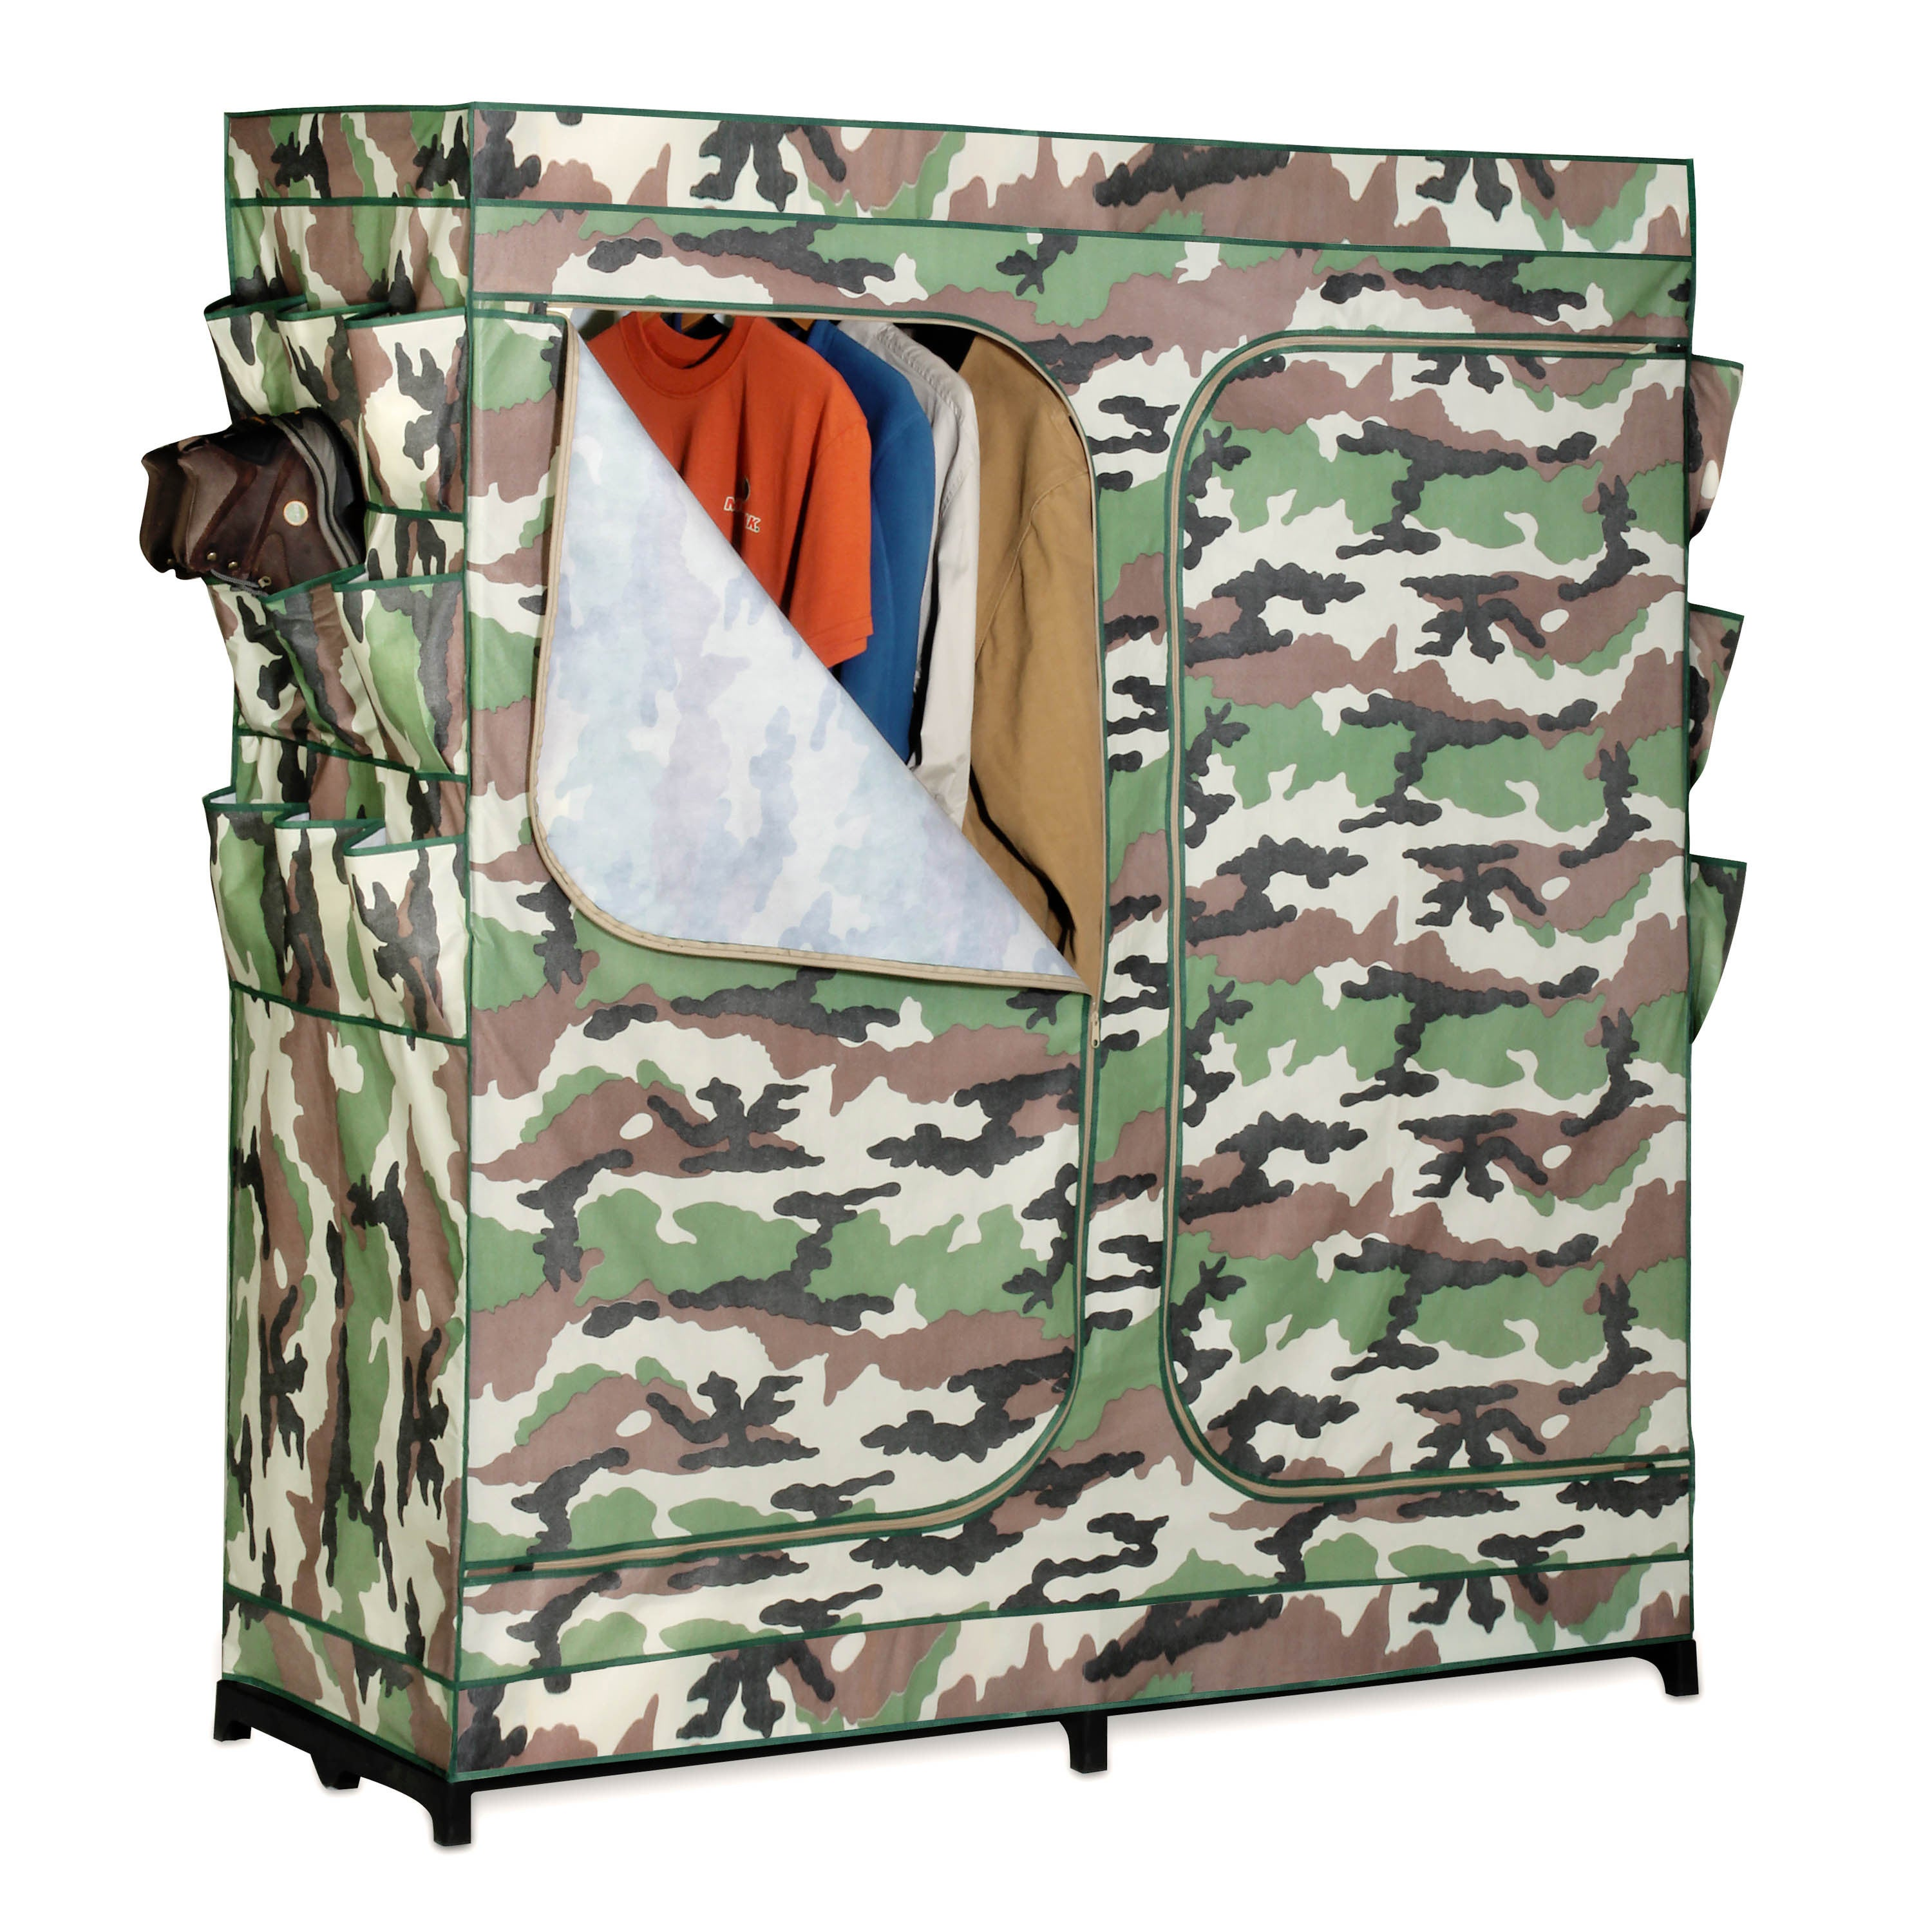 Honey-Can-Do 60-inch Double Door Storage Closet- Camoufla...